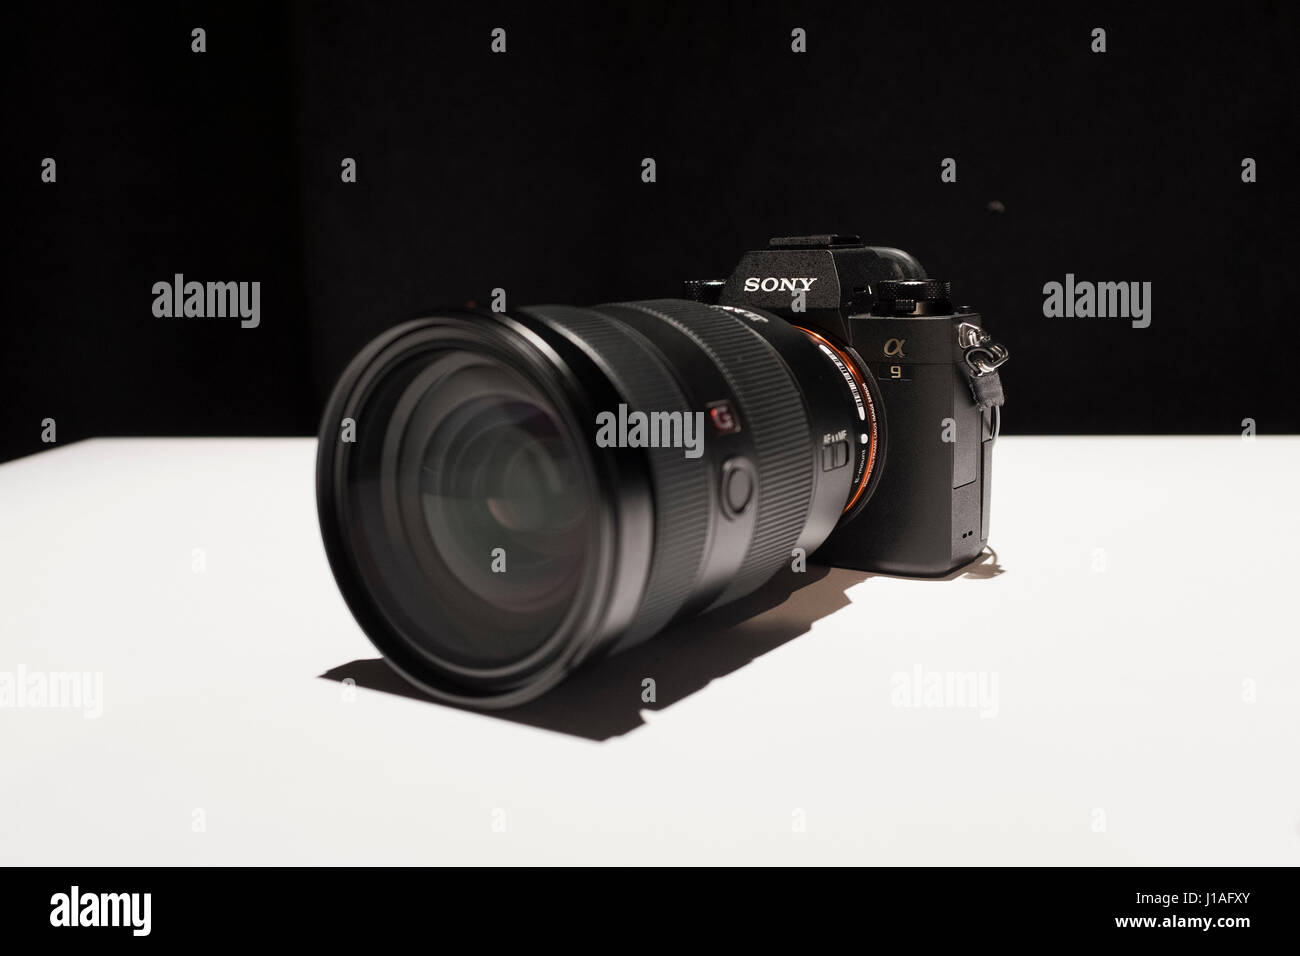 Photo Sensor Stockfotos & Photo Sensor Bilder - Alamy